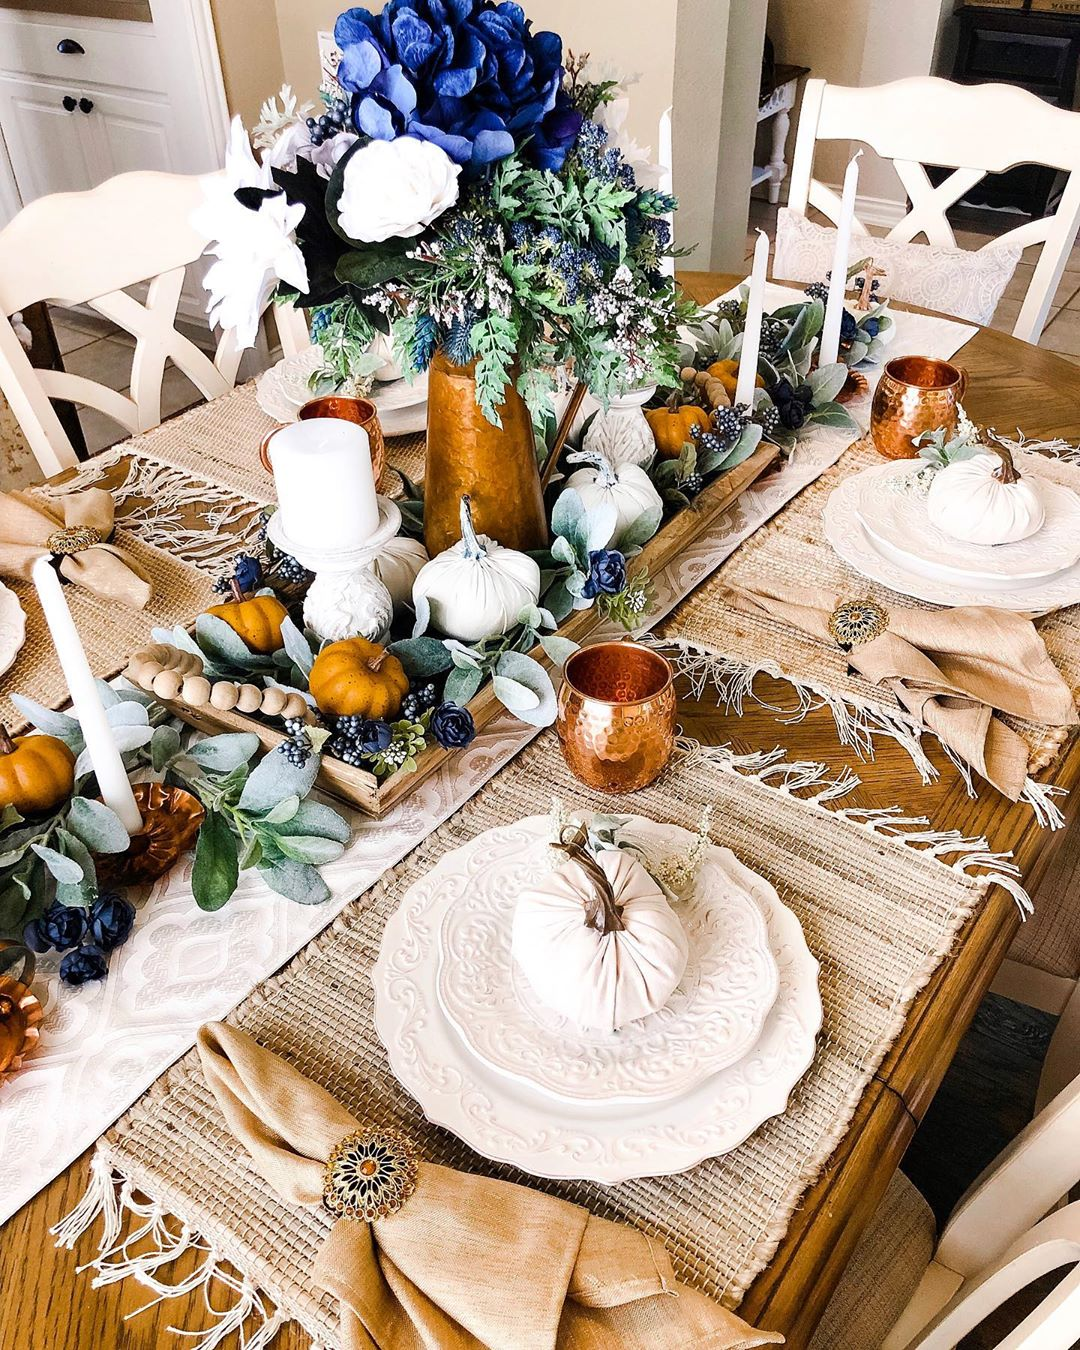 1570190898 43 funky fresh fall tablescapes from instagram - Funky Fresh Fall Tablescapes From Instagram